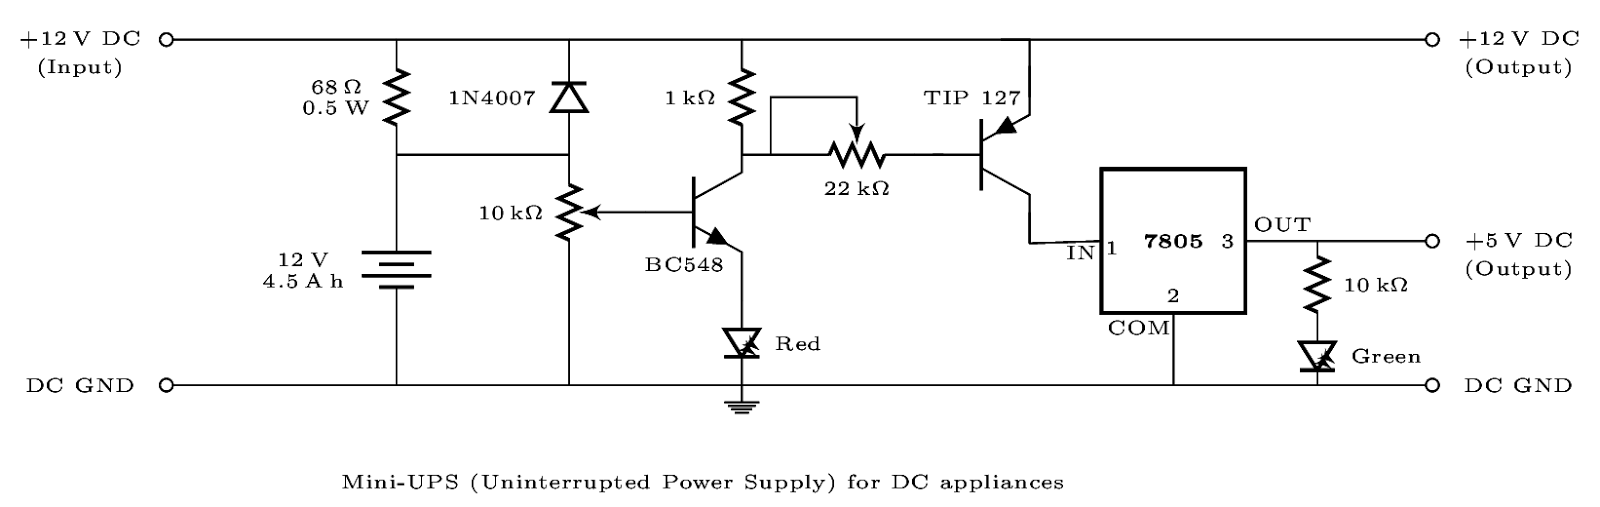 Circuit Diagram In Latex - Go Wiring Diagram on computer circuit diagrams, drawing circuit symbols, drawing maps, drawing kits, physics circuit diagrams, reading circuit diagrams,